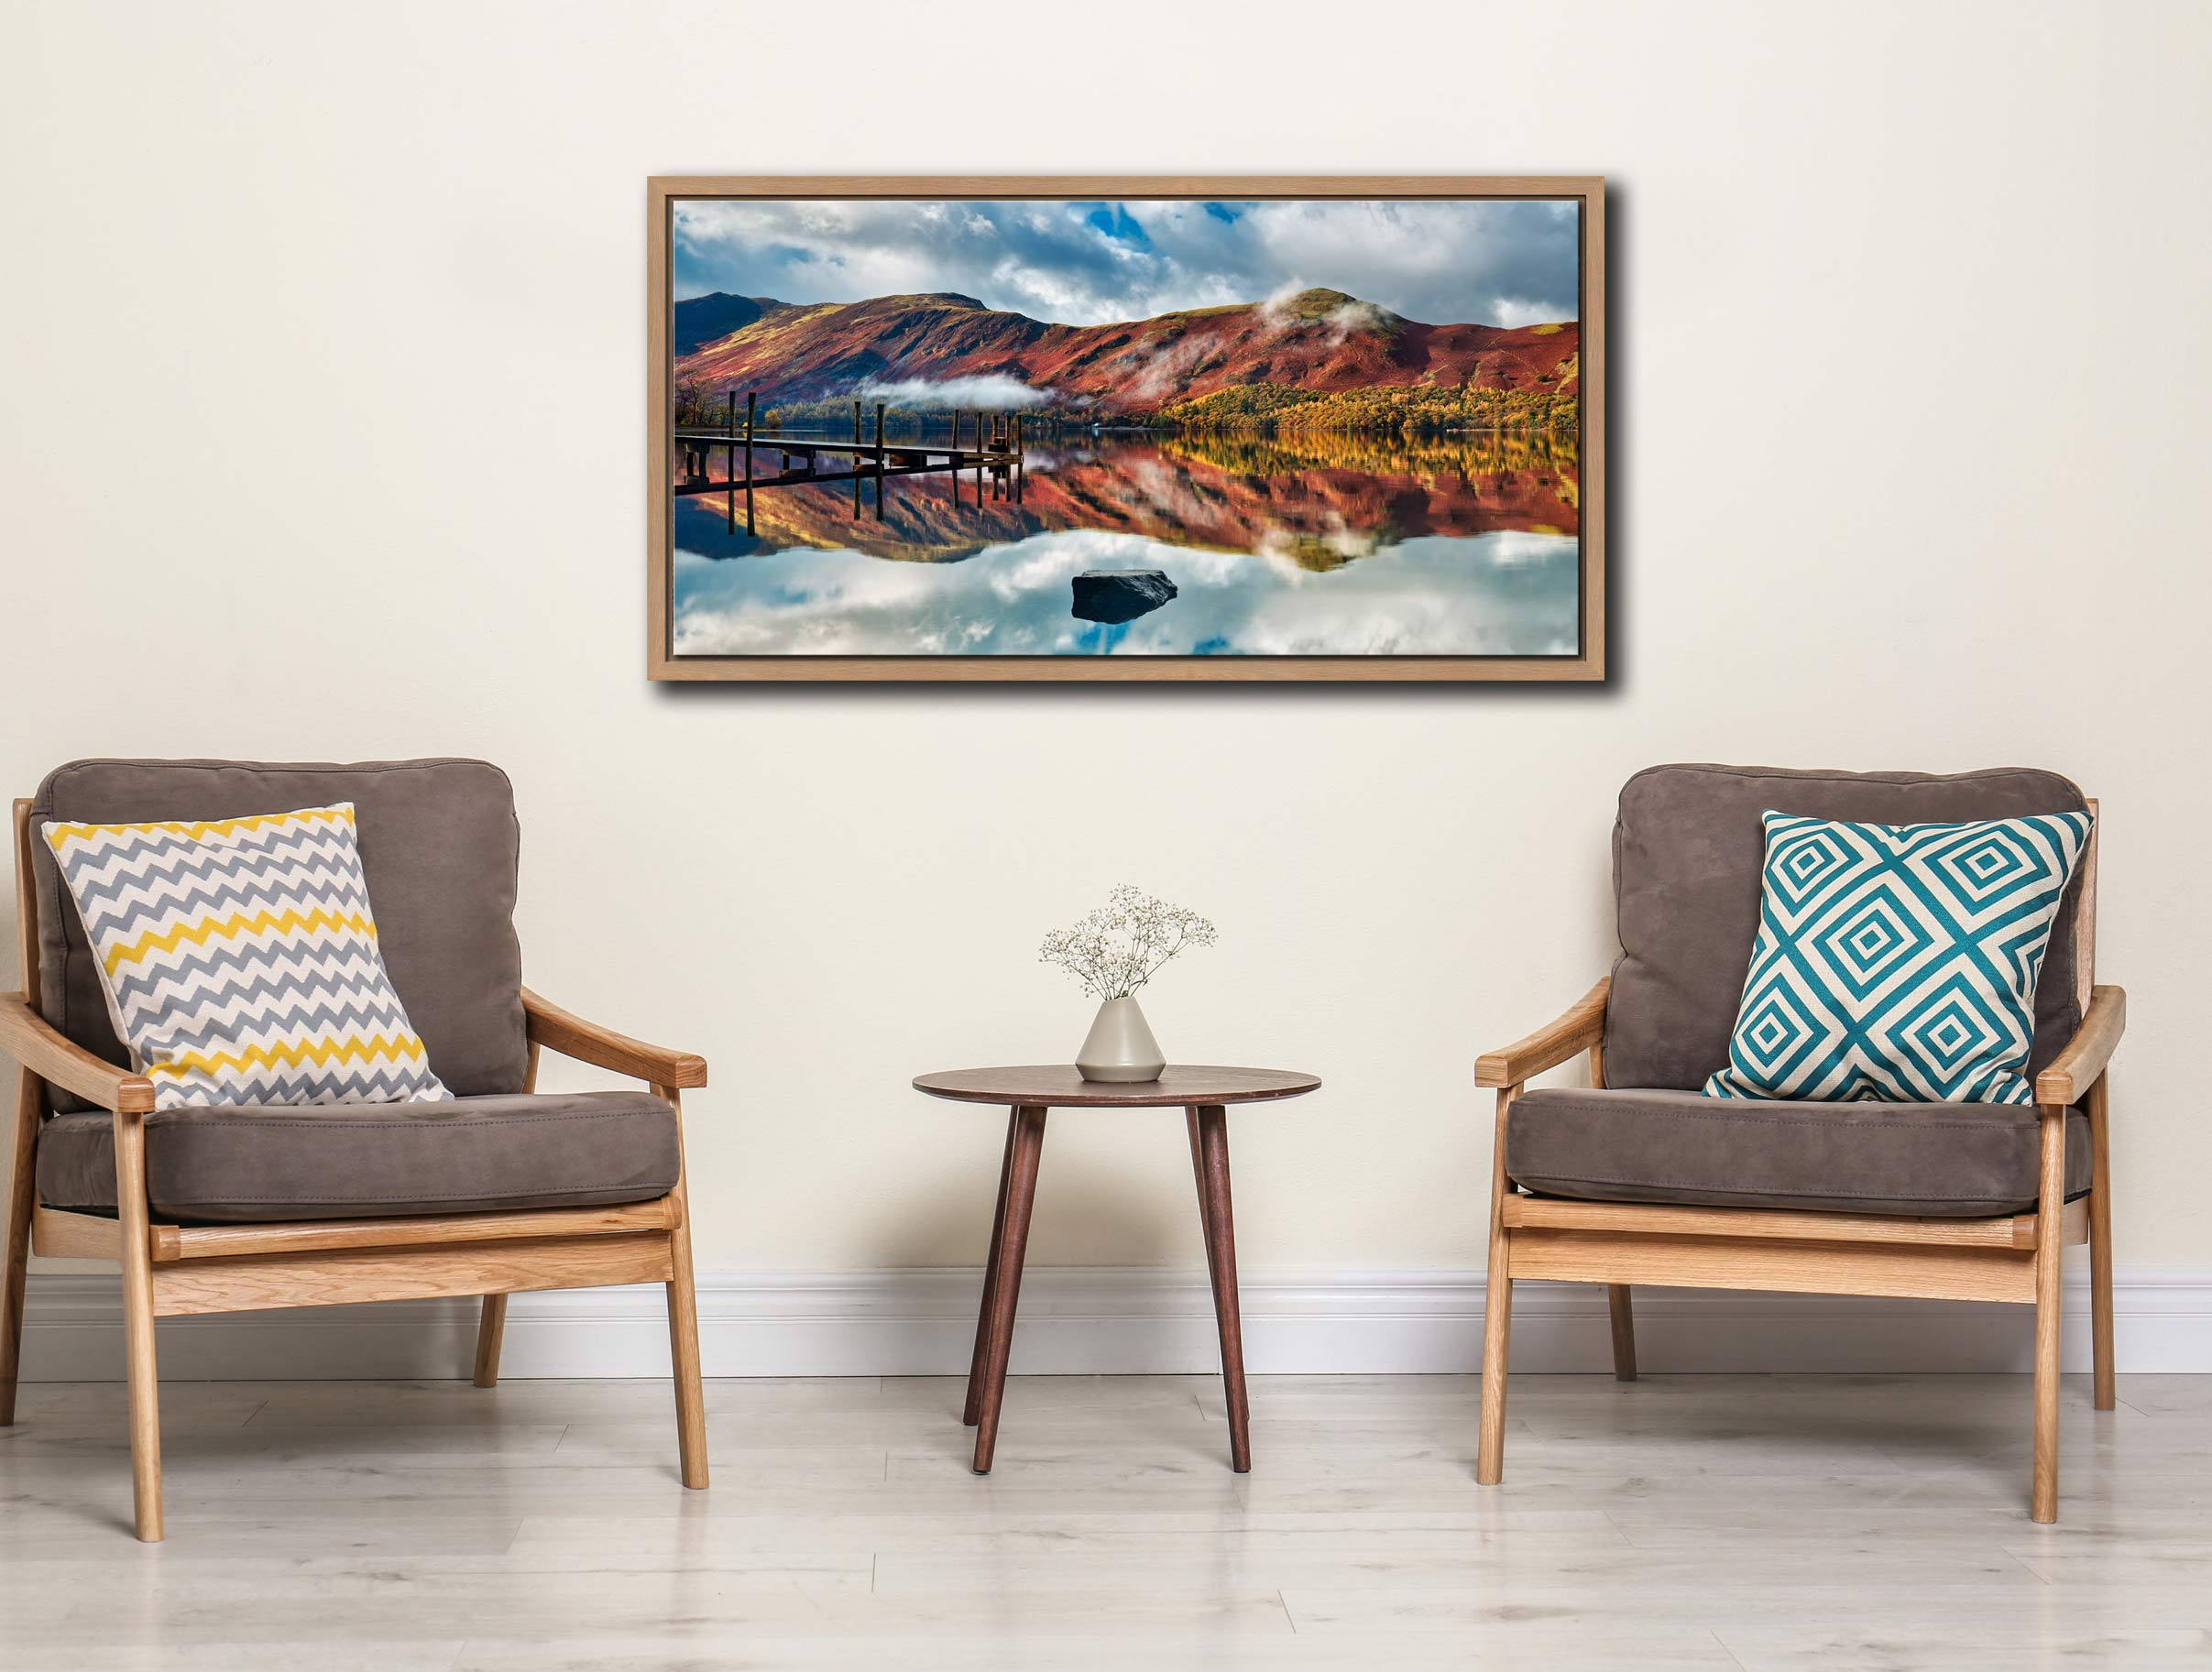 Late Autumn at Ashness Jetty - Oak floater frame with acrylic glazing on Wall